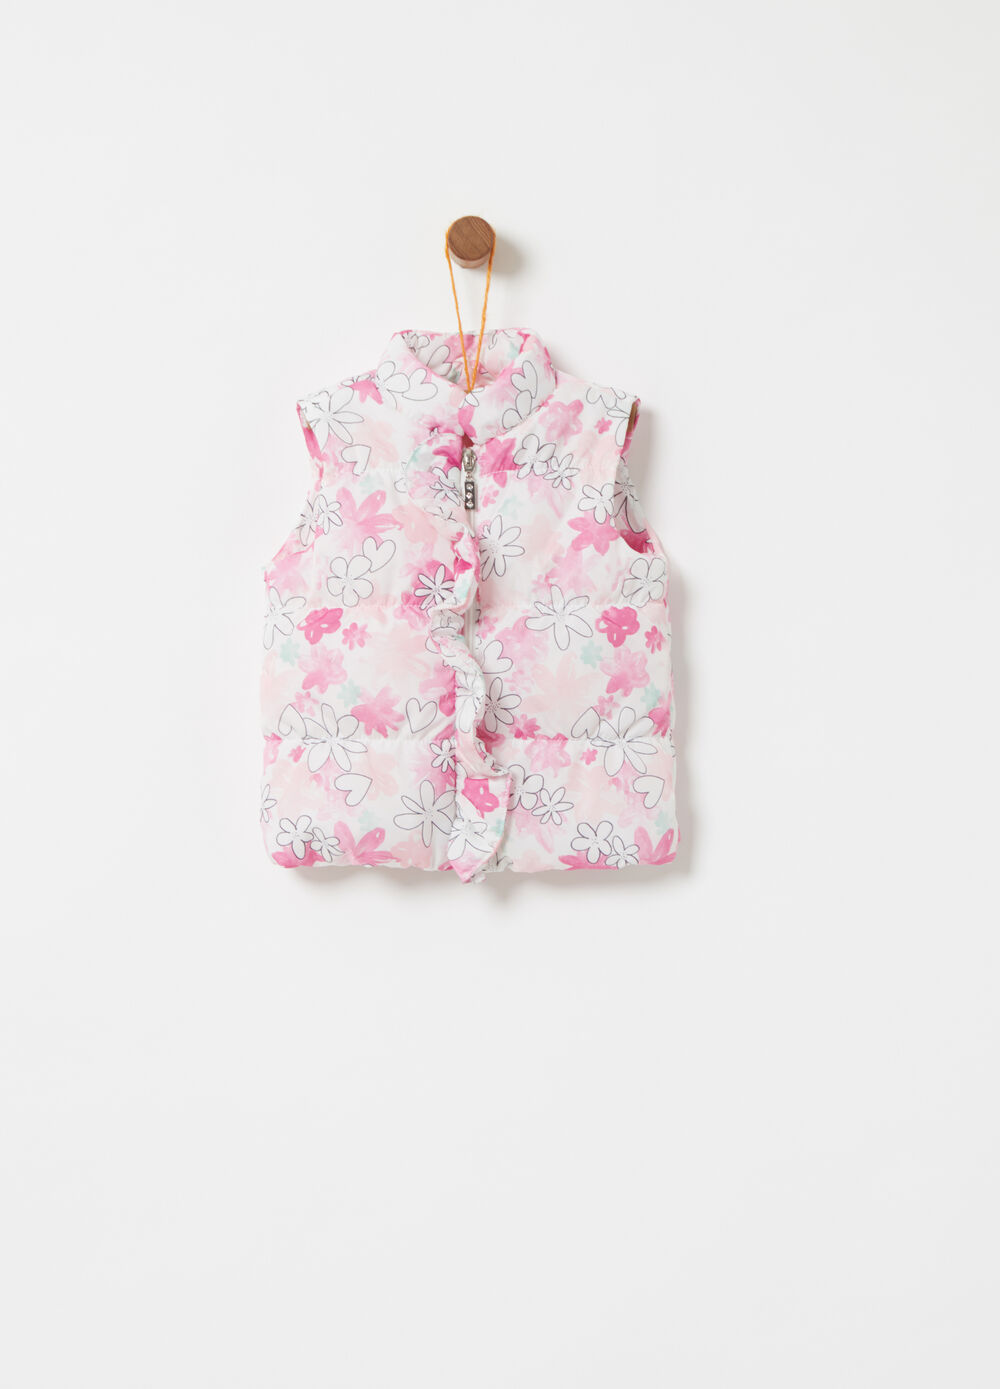 Padded gilet with floral frills